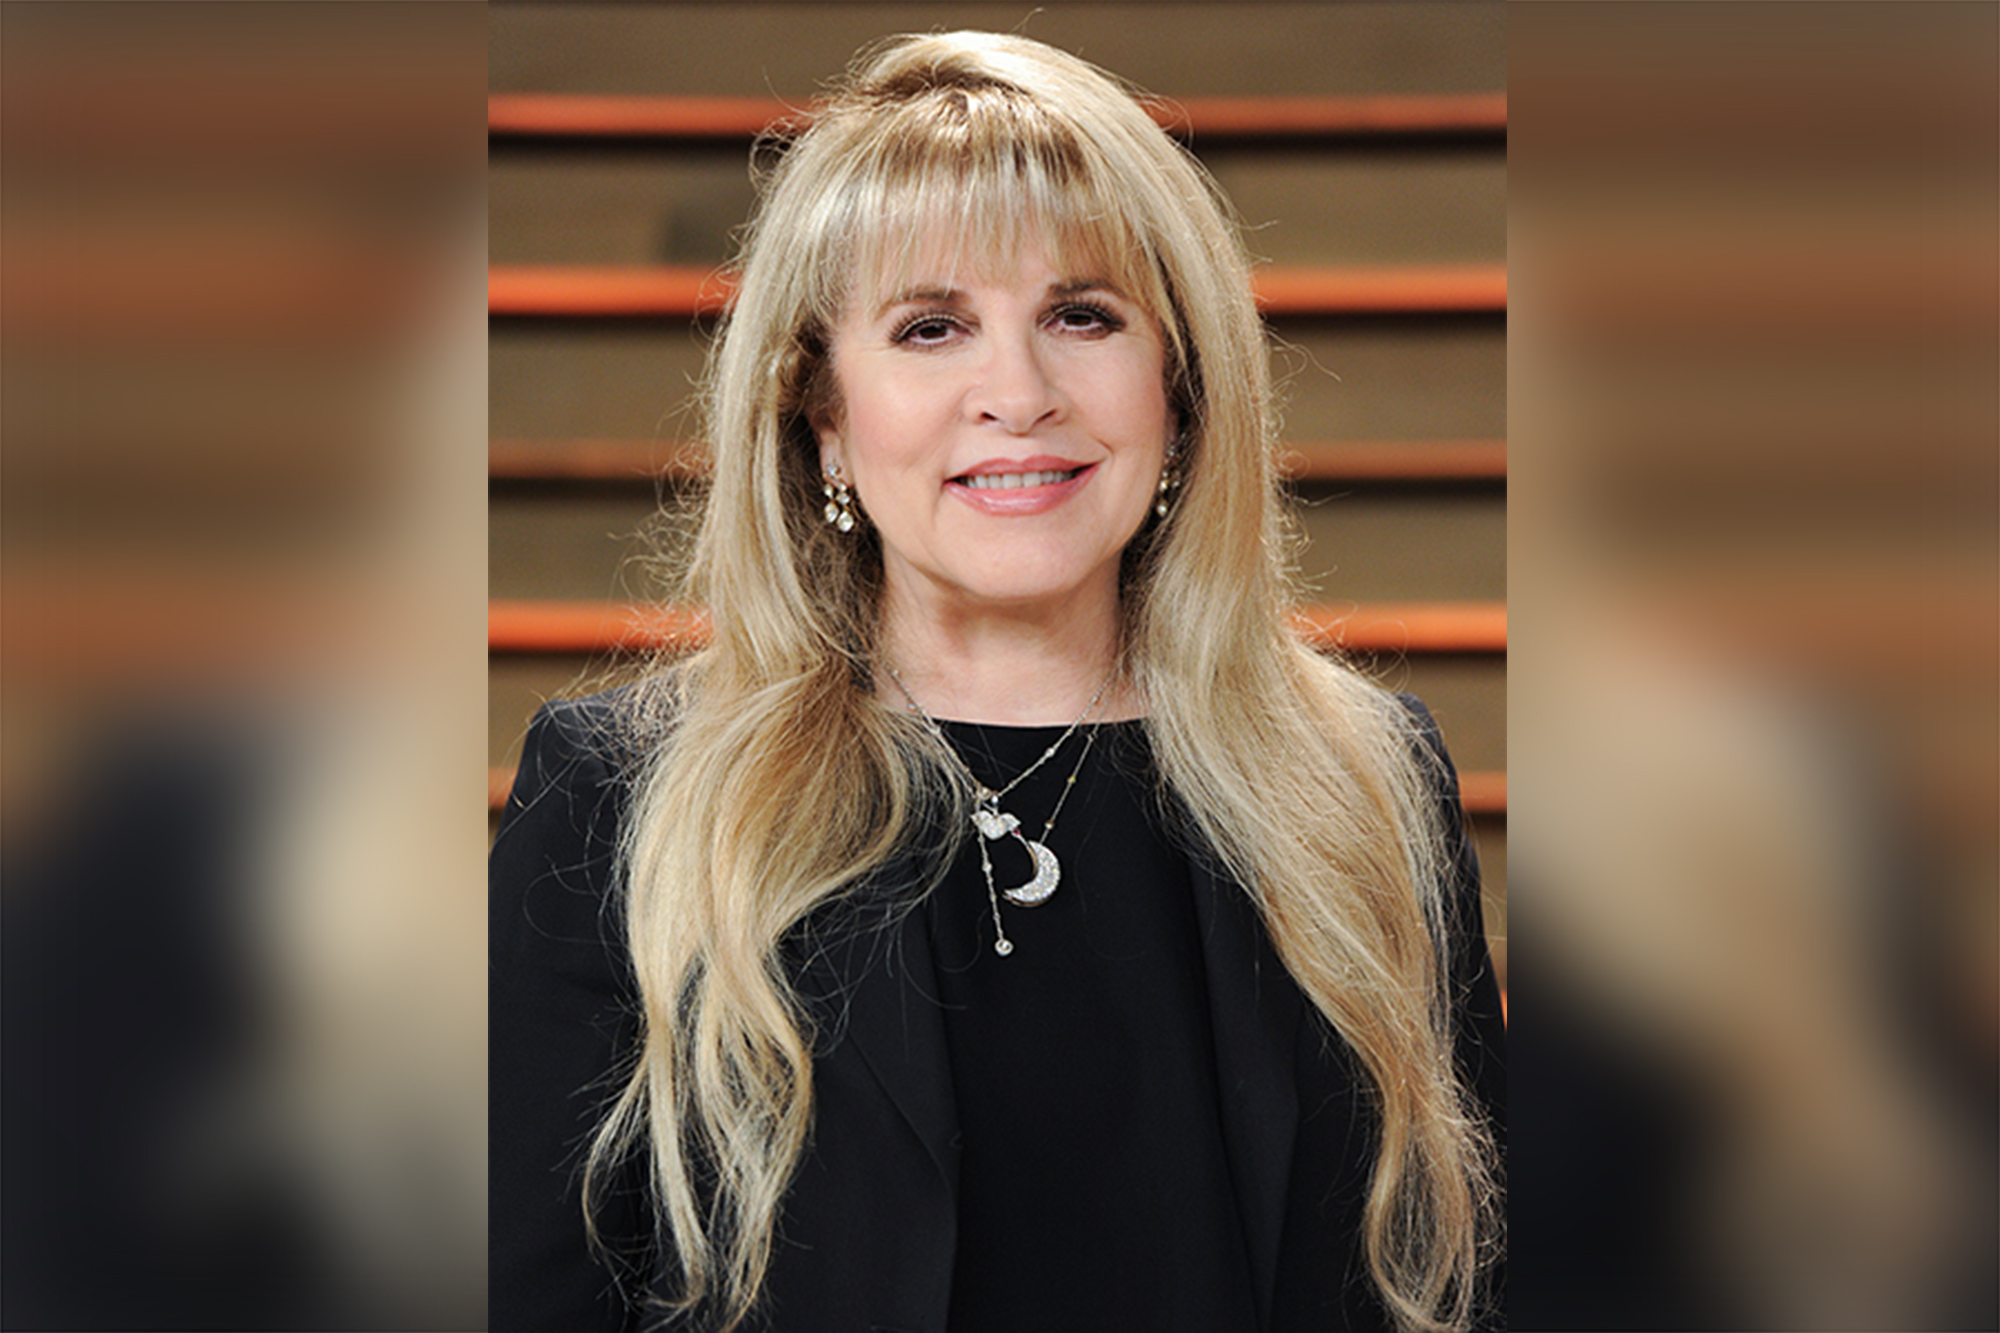 Stevie Nicks parts ways with a majority of her music rights